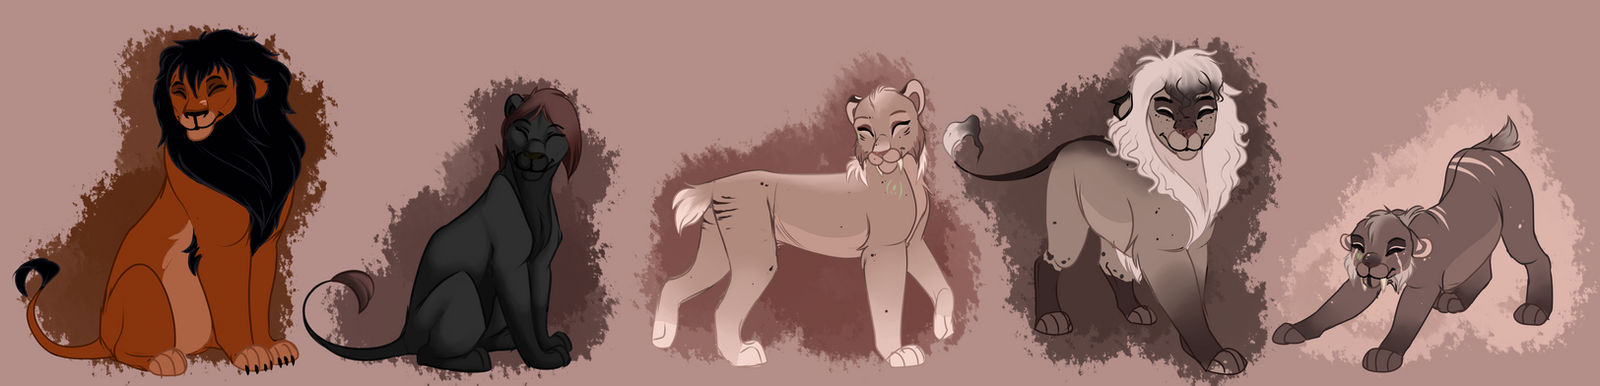 YCH Smiley lions. Commission.